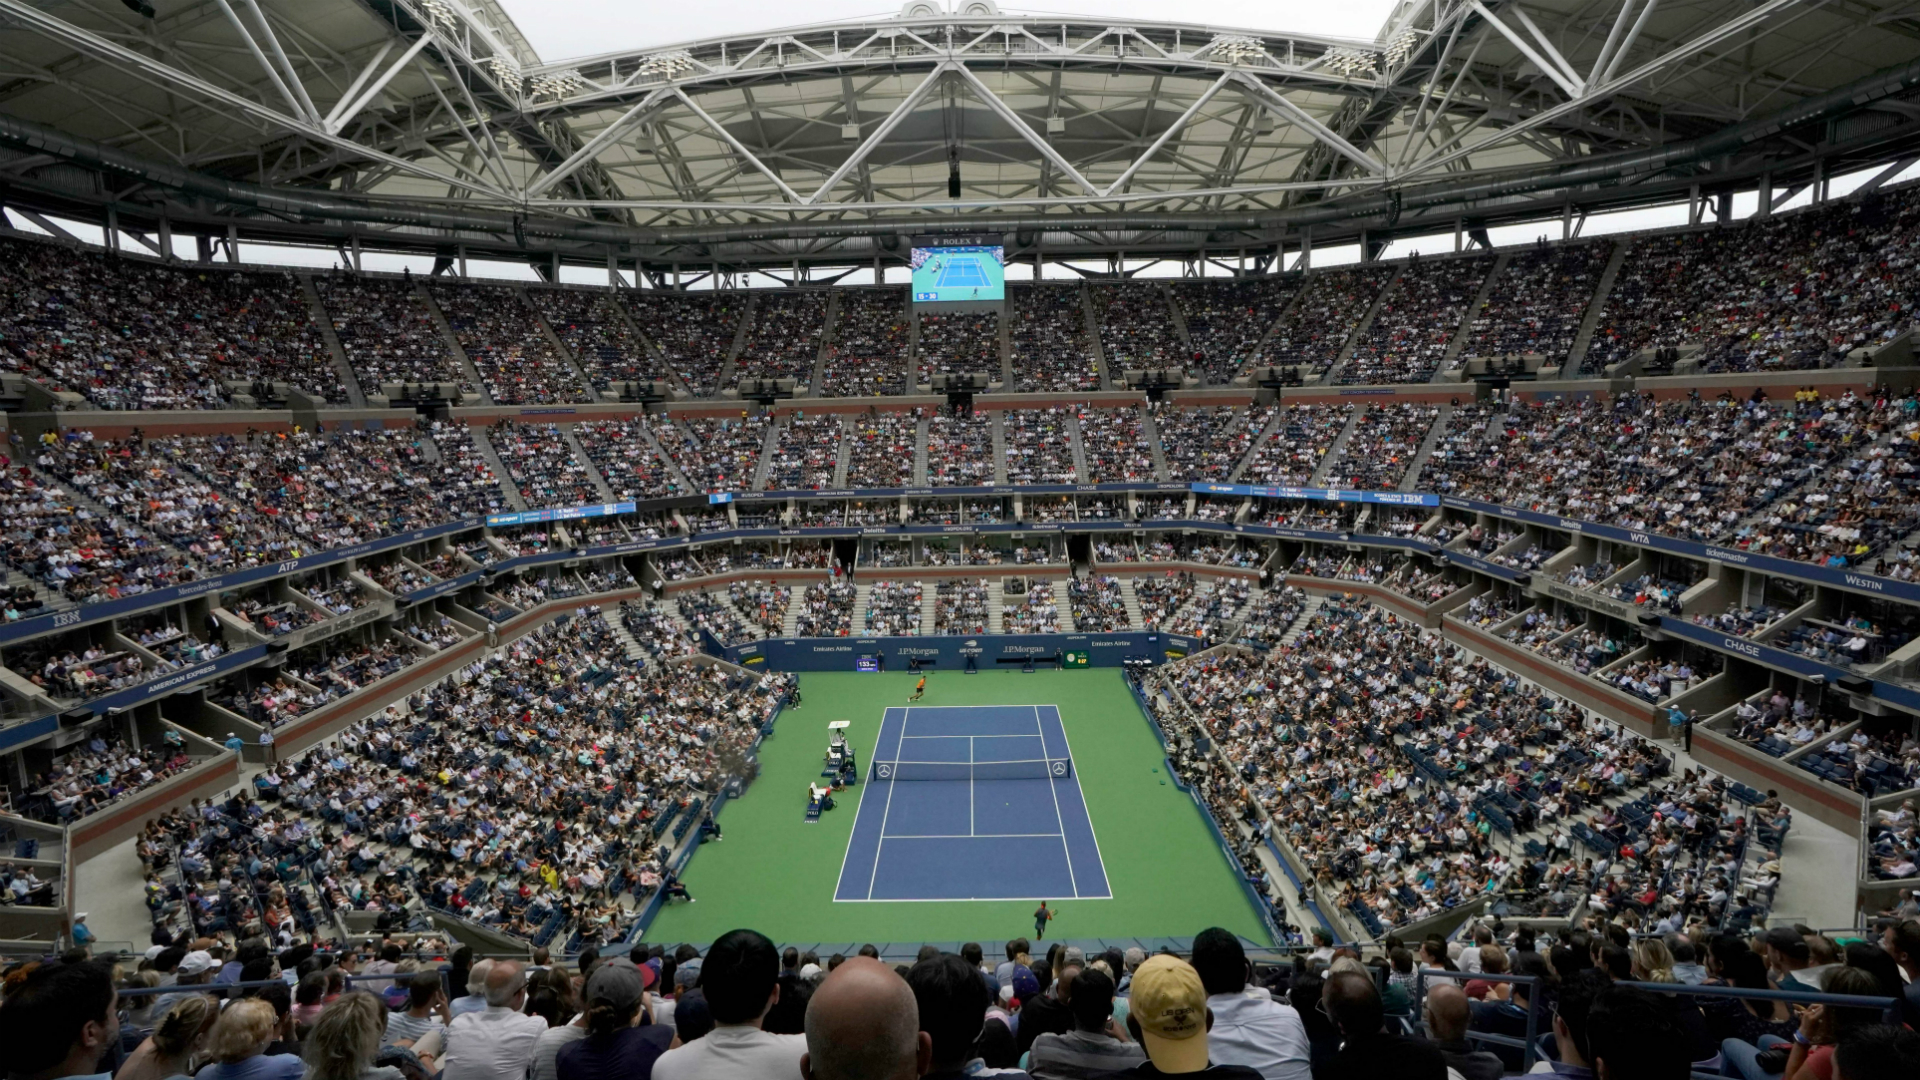 US Open schedule 2020: TV coverage, channels & more to watch every match in tennis Grand Slam 1